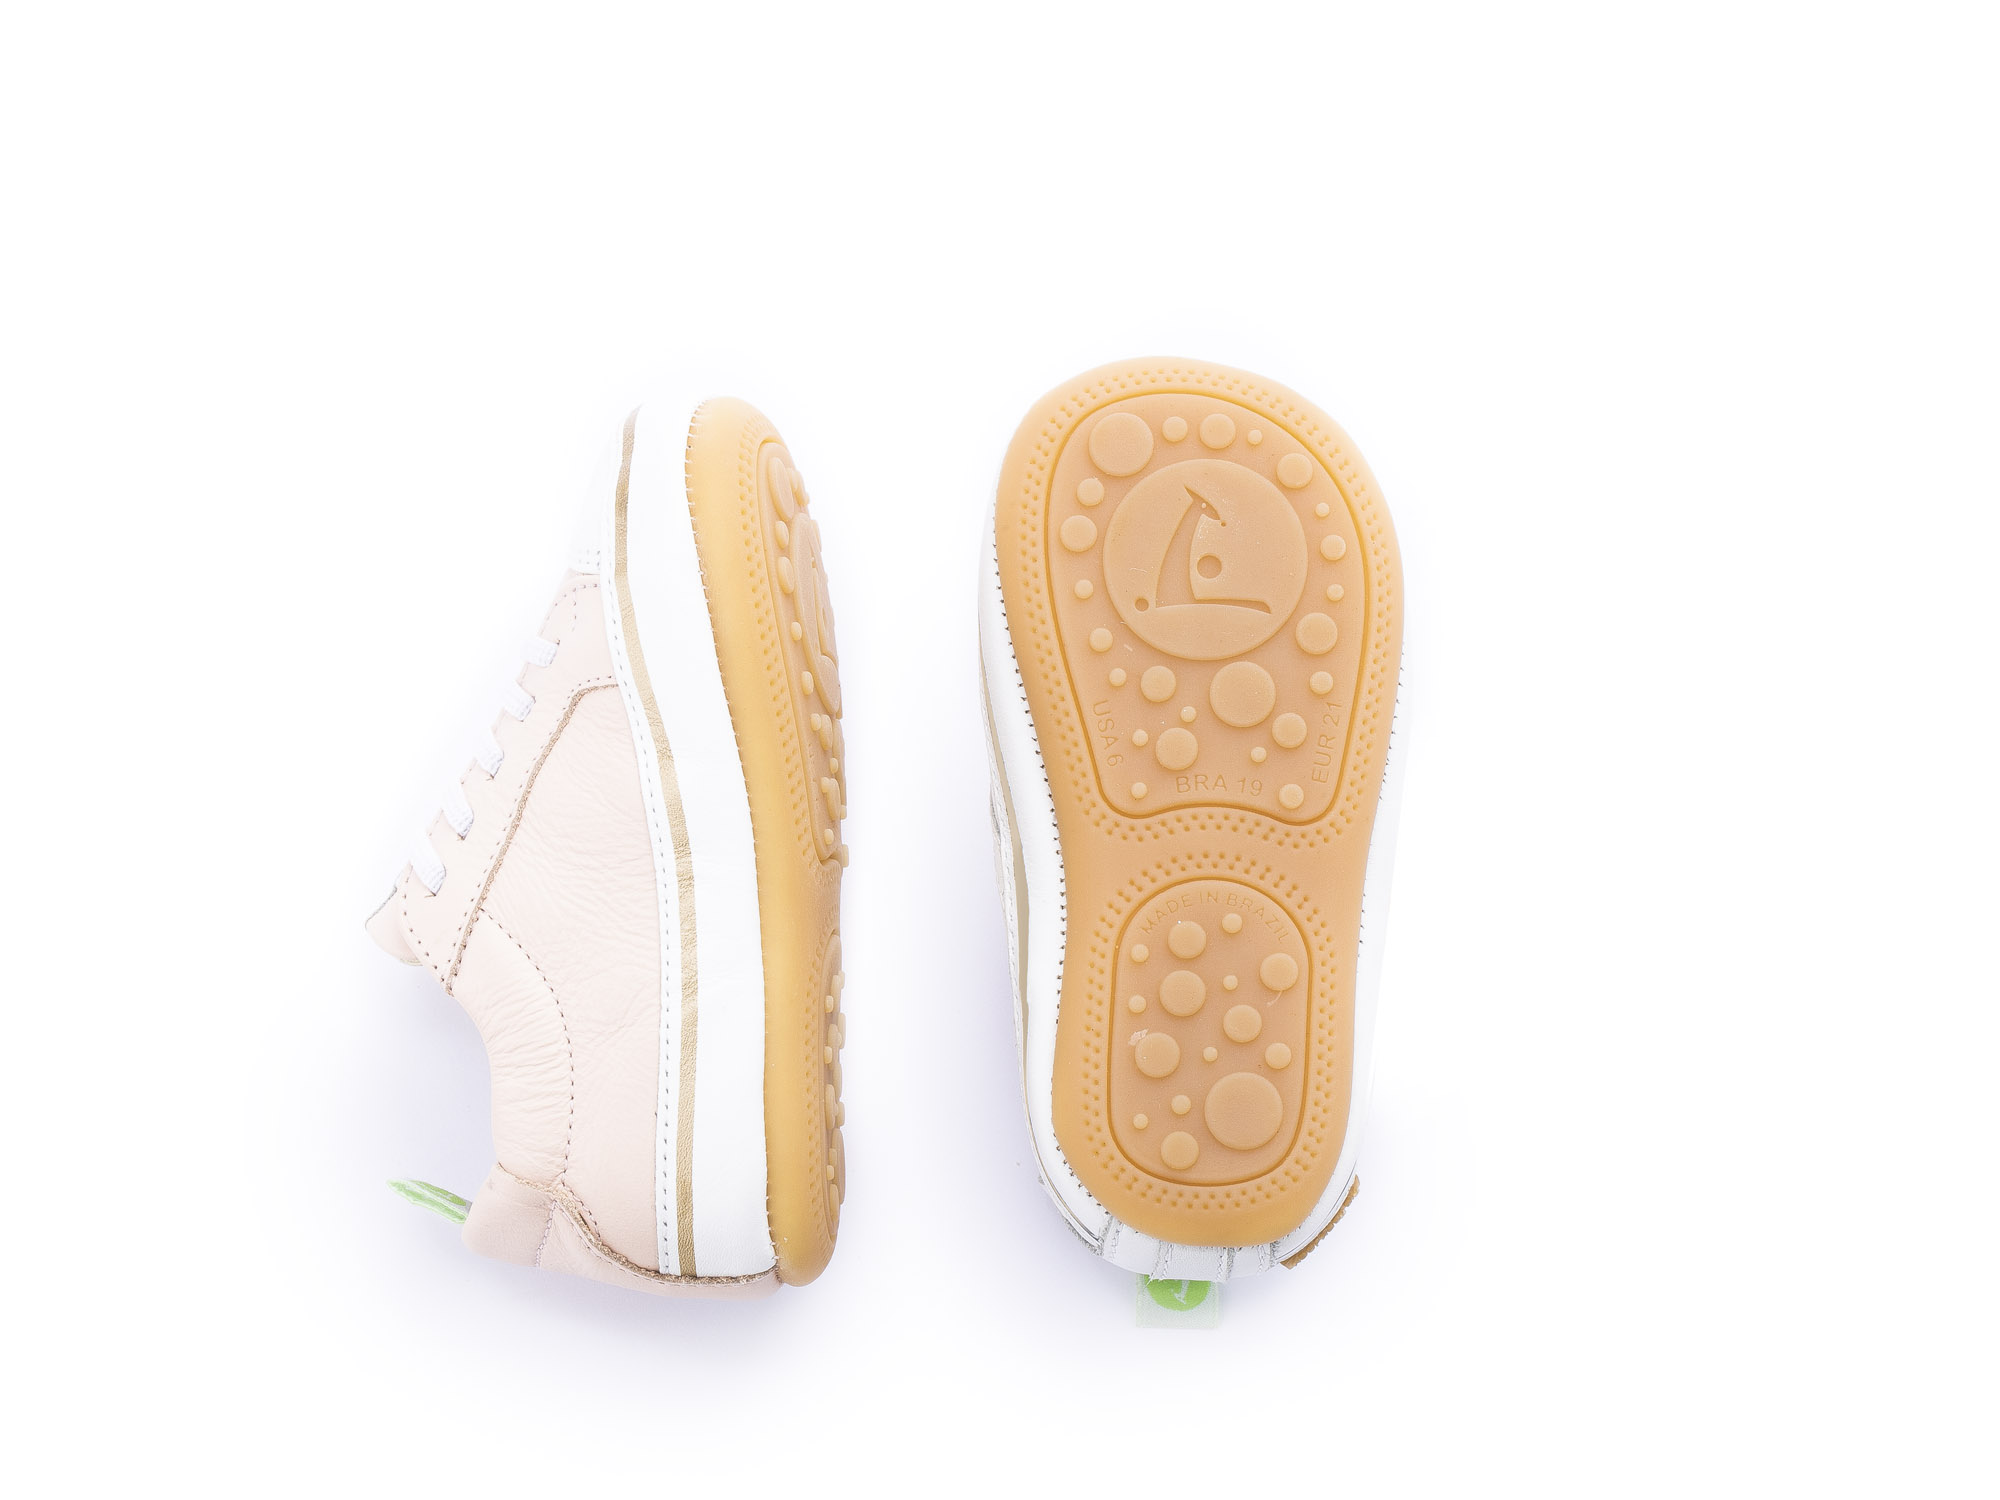 Sneaker Casual Funky Cotton Candy/ White  Baby 0 à 2 anos - 1